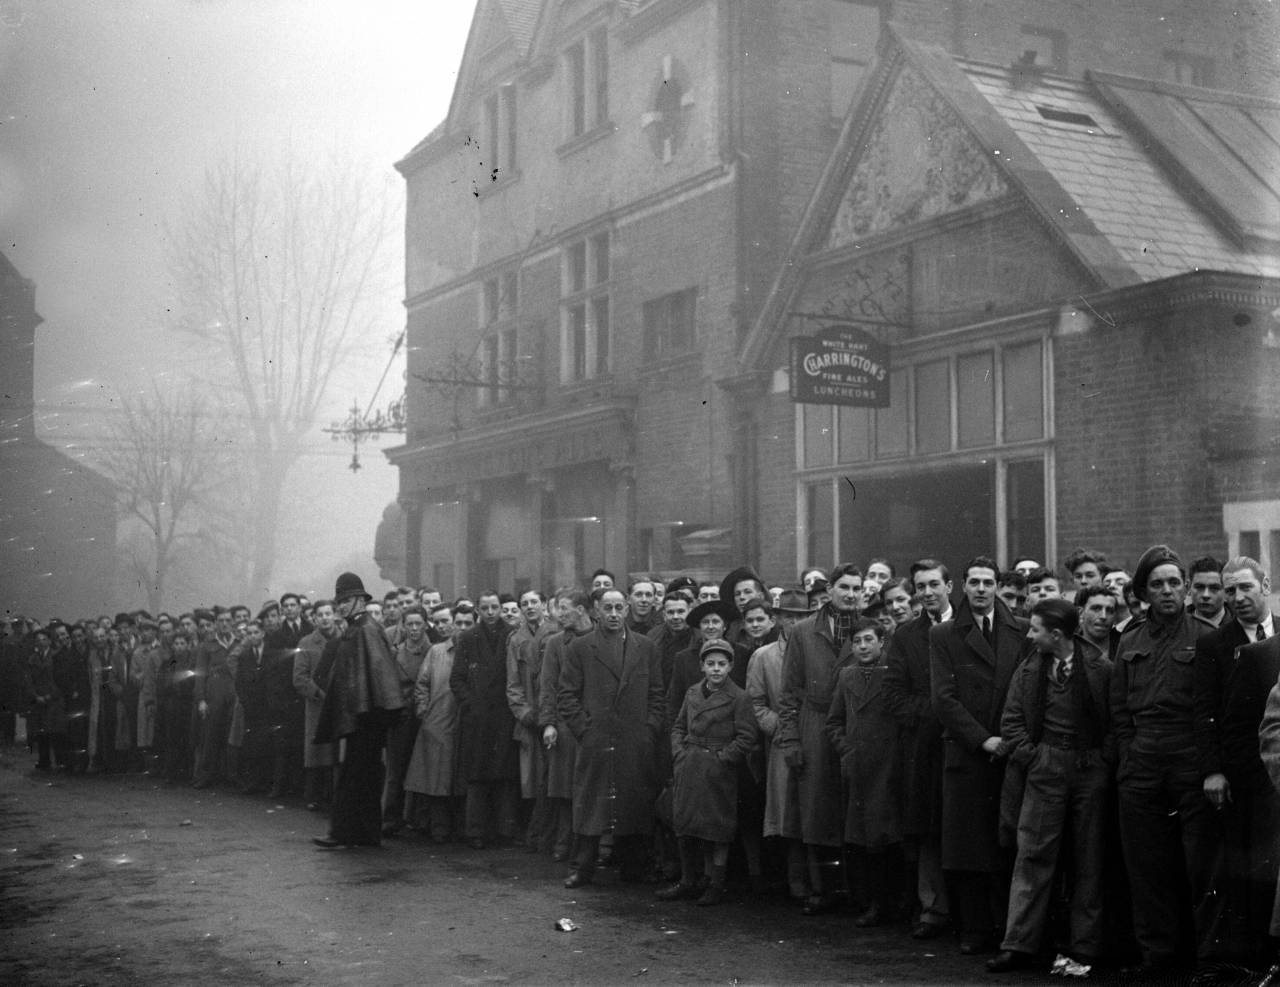 21st May 1945: Part of the queue outside Tottenham's ground for the football match between Arsenal and Dynamo Moscow. (Photo by William Vanderson/Fox Photos/Getty Images)